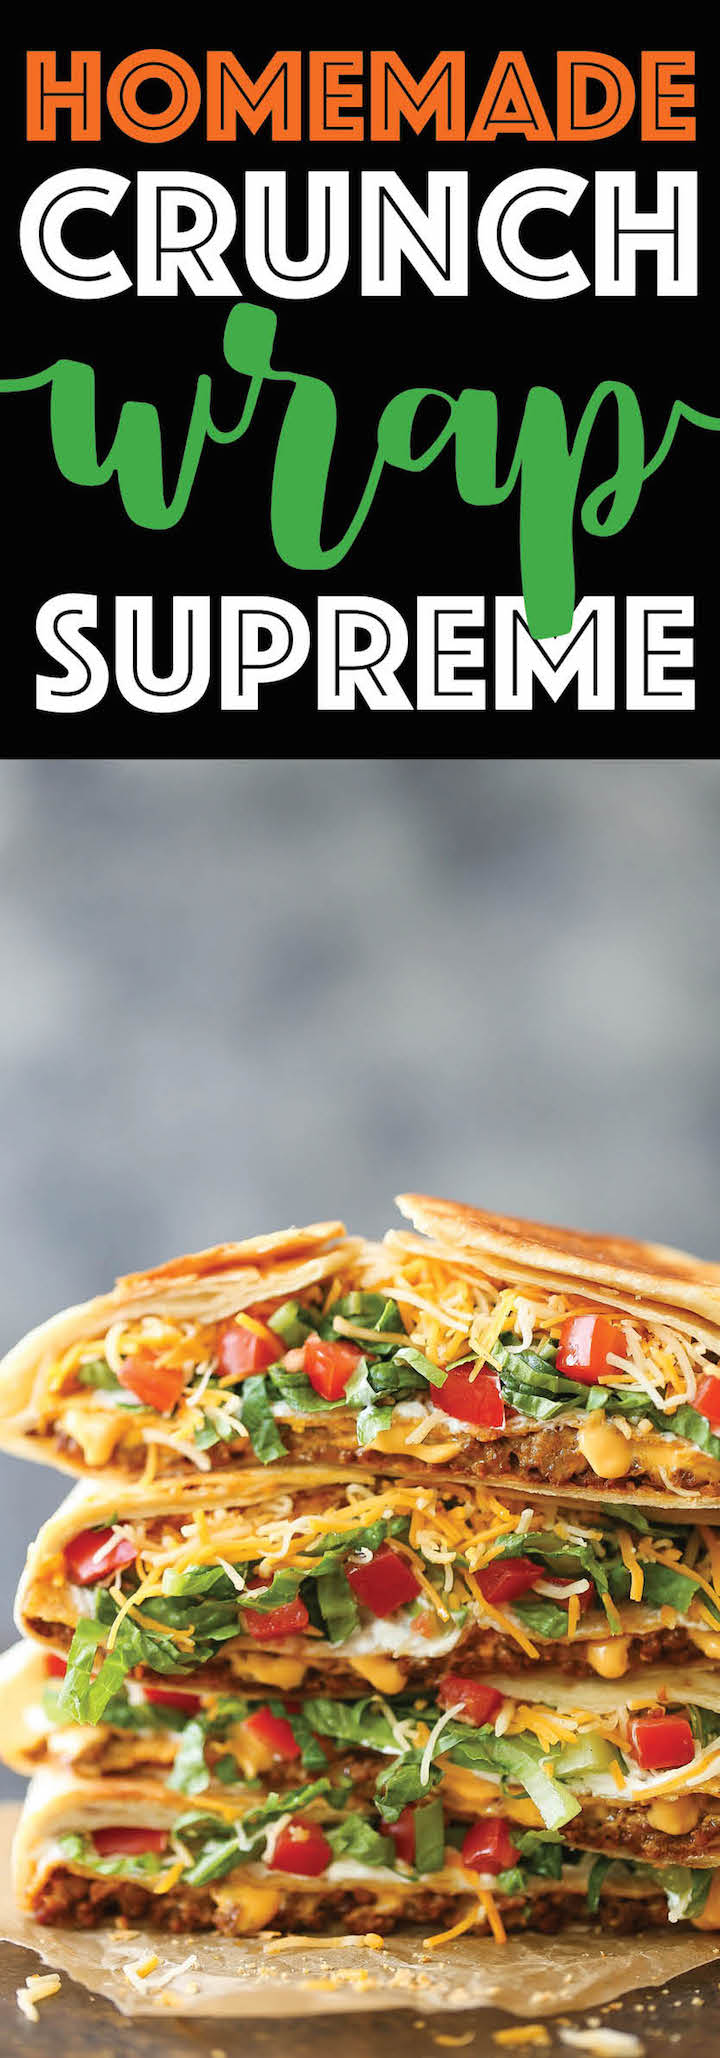 Homemade Crunch Wrap Supreme - A complete copycat version from Taco Bell! Except completely homemade and made so much more healthier! Get your fix now!